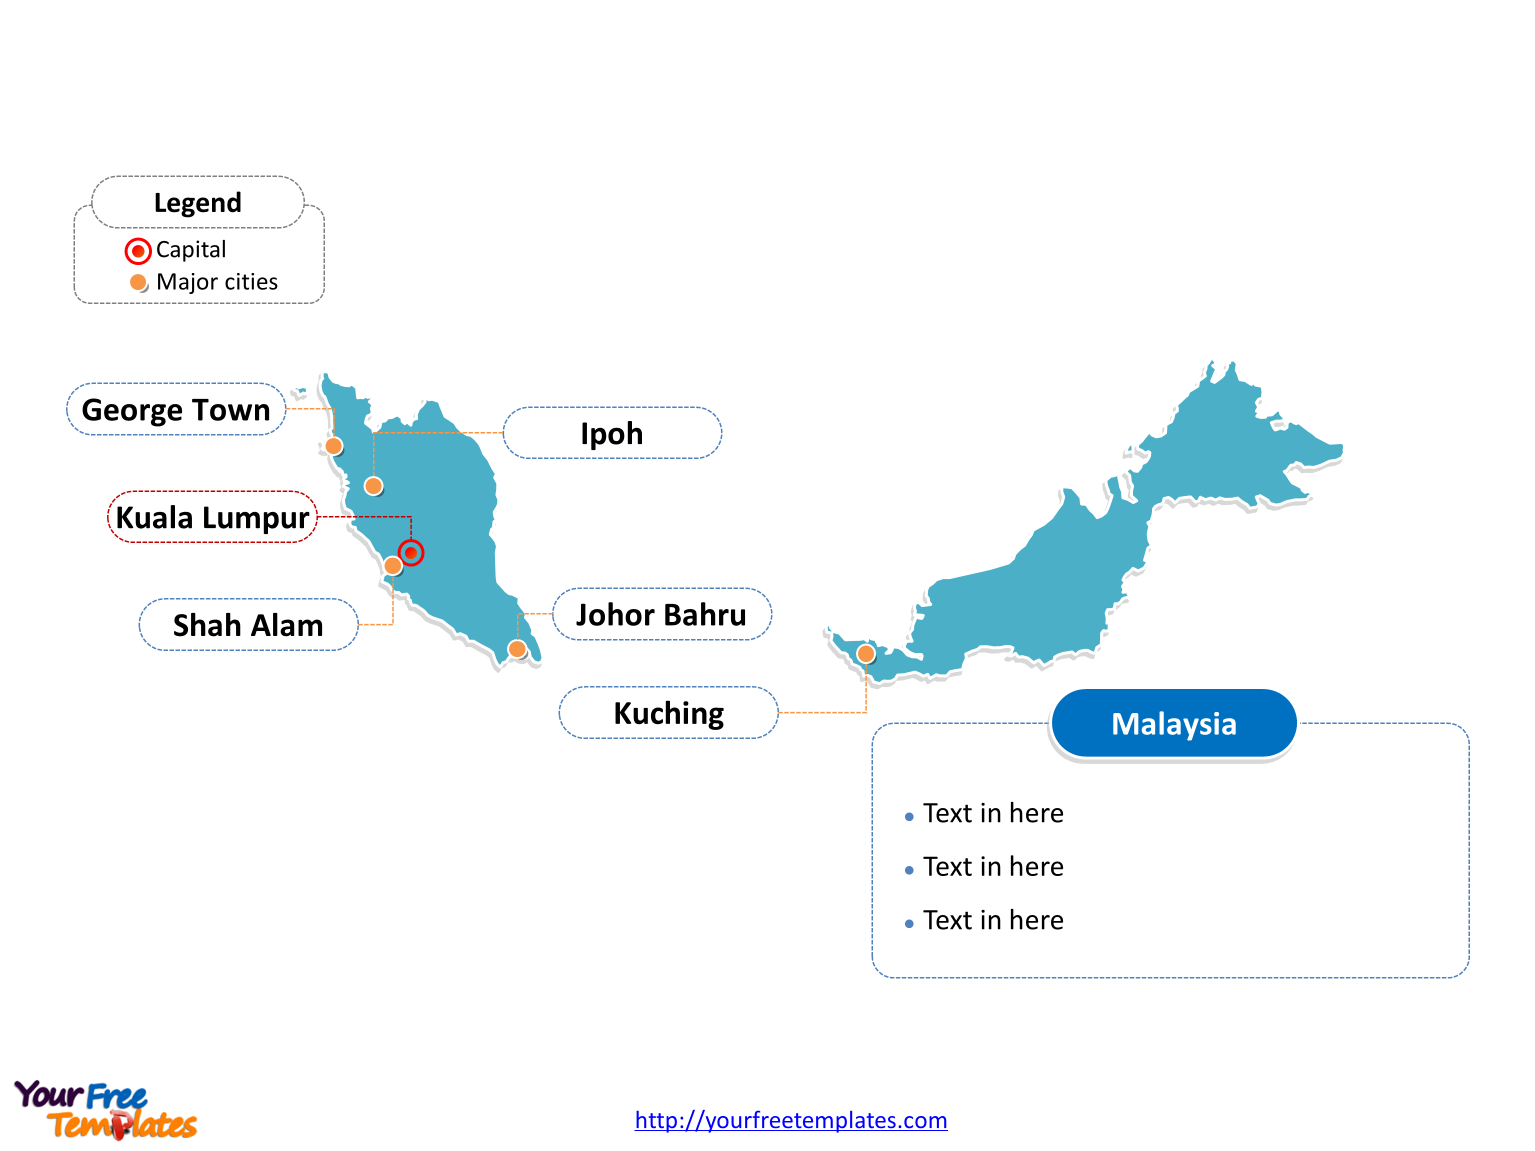 Malaysia Outline map labeled with cities